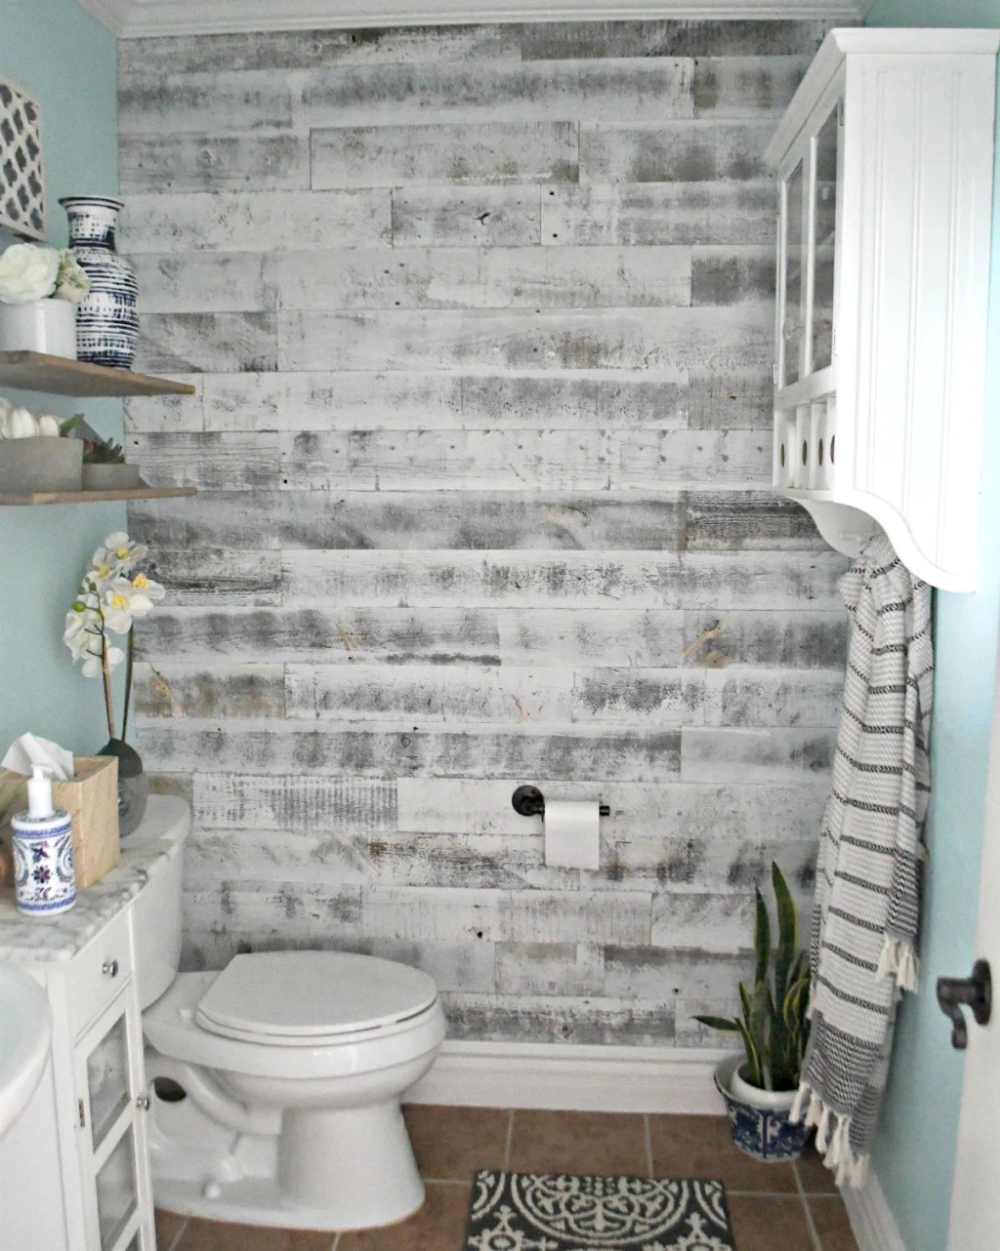 Bathroom Remodel With Stikwood: Peel And Stick Reclaimed Wood Walls